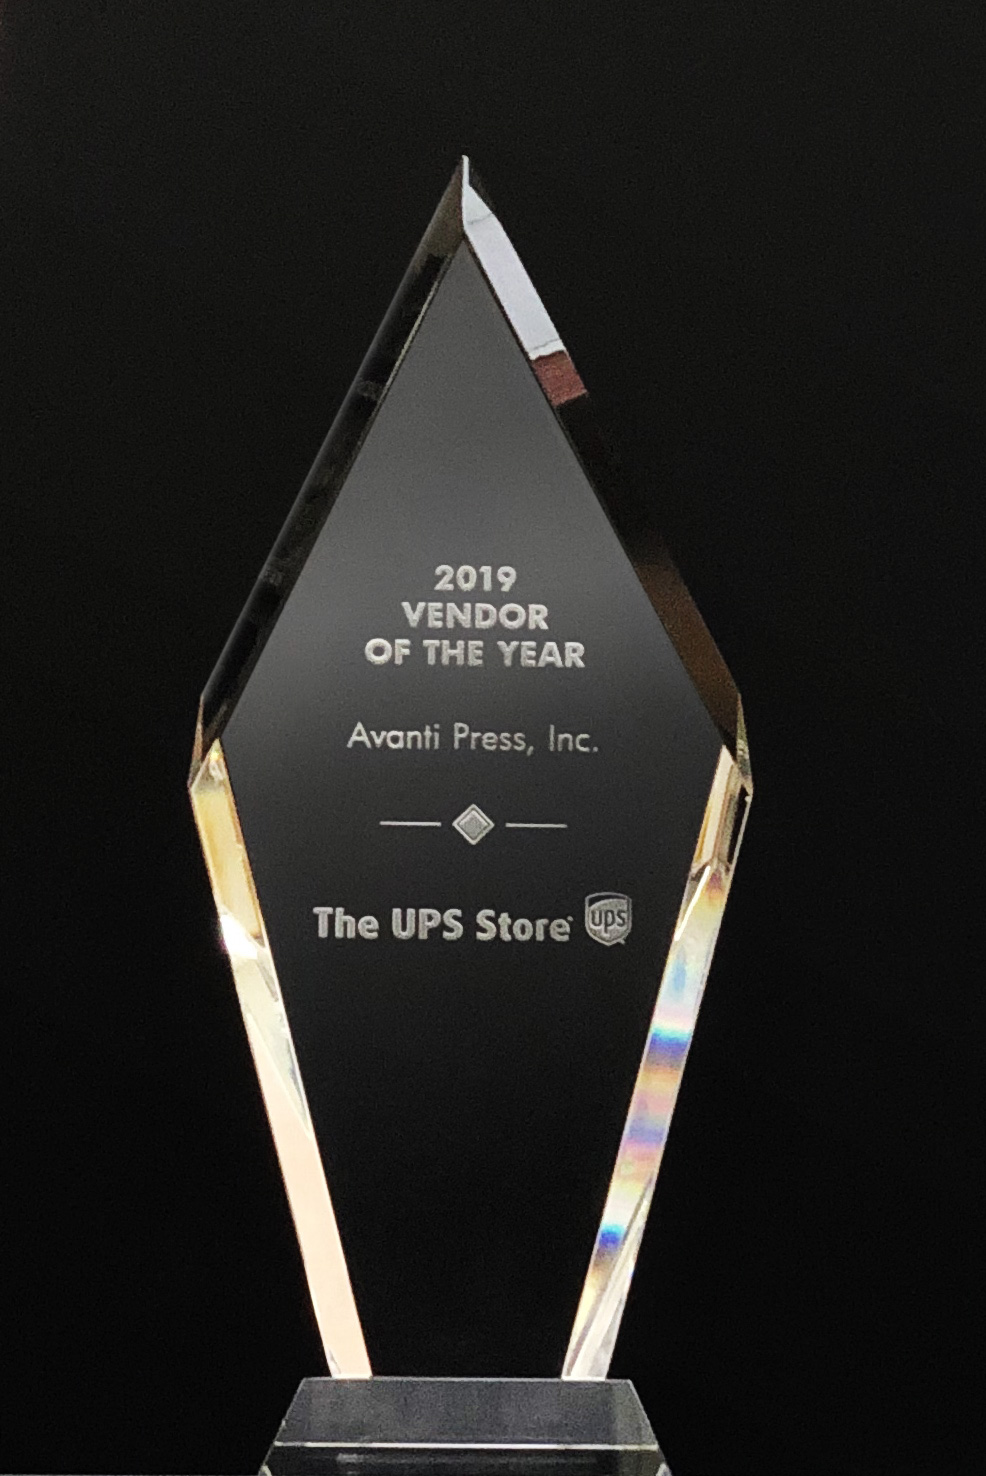 The UPS Store Vendor of the Year Award